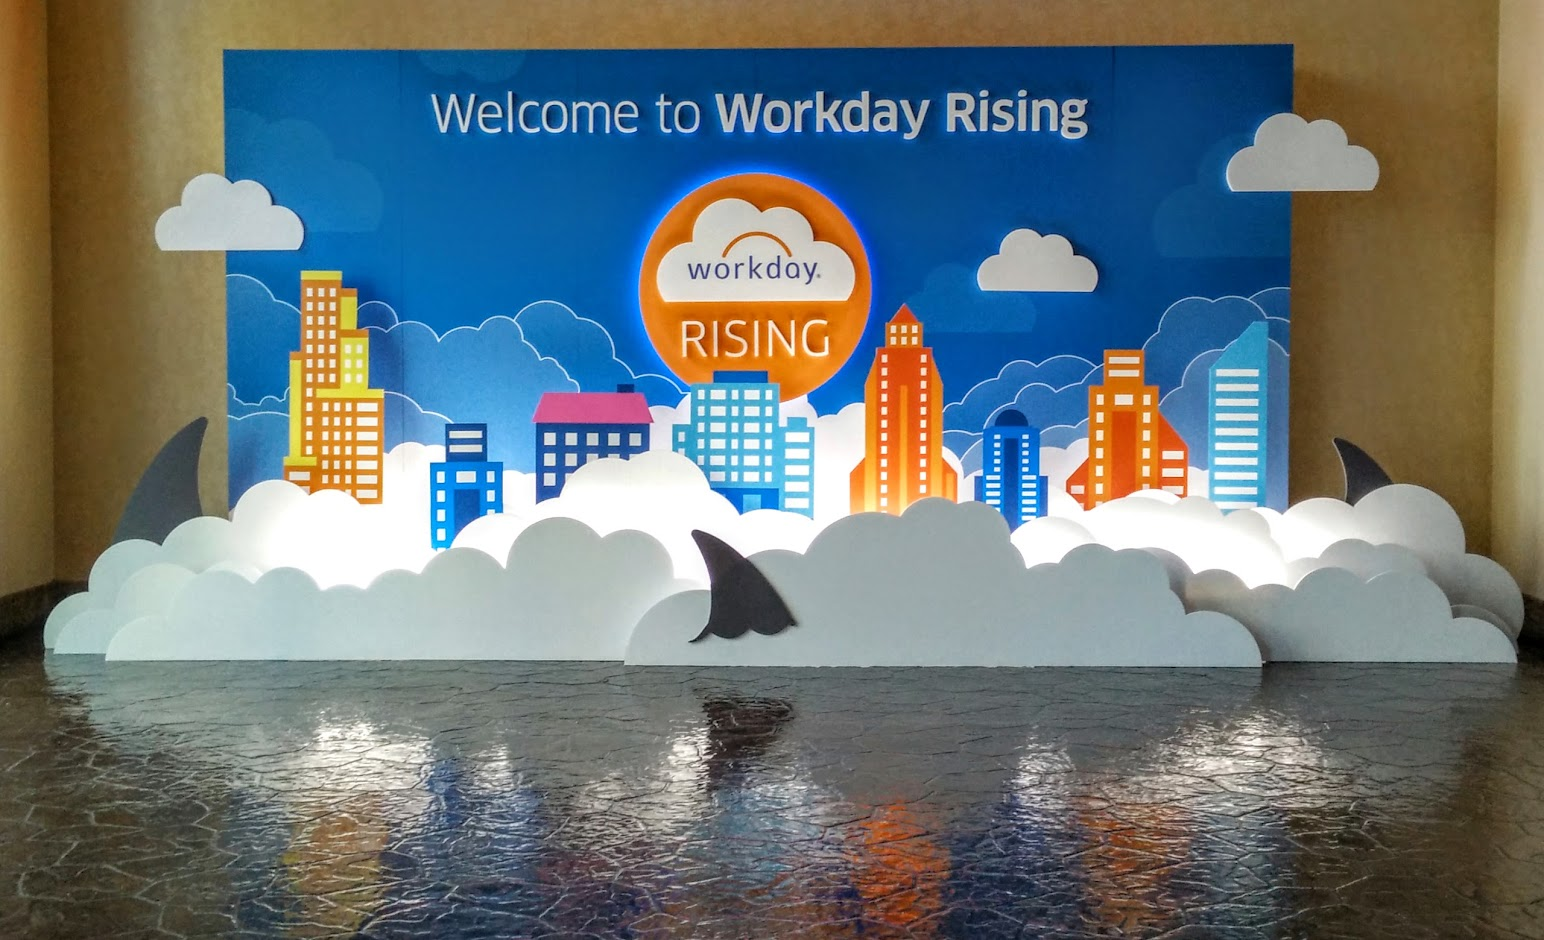 Welcome to Workday Rising